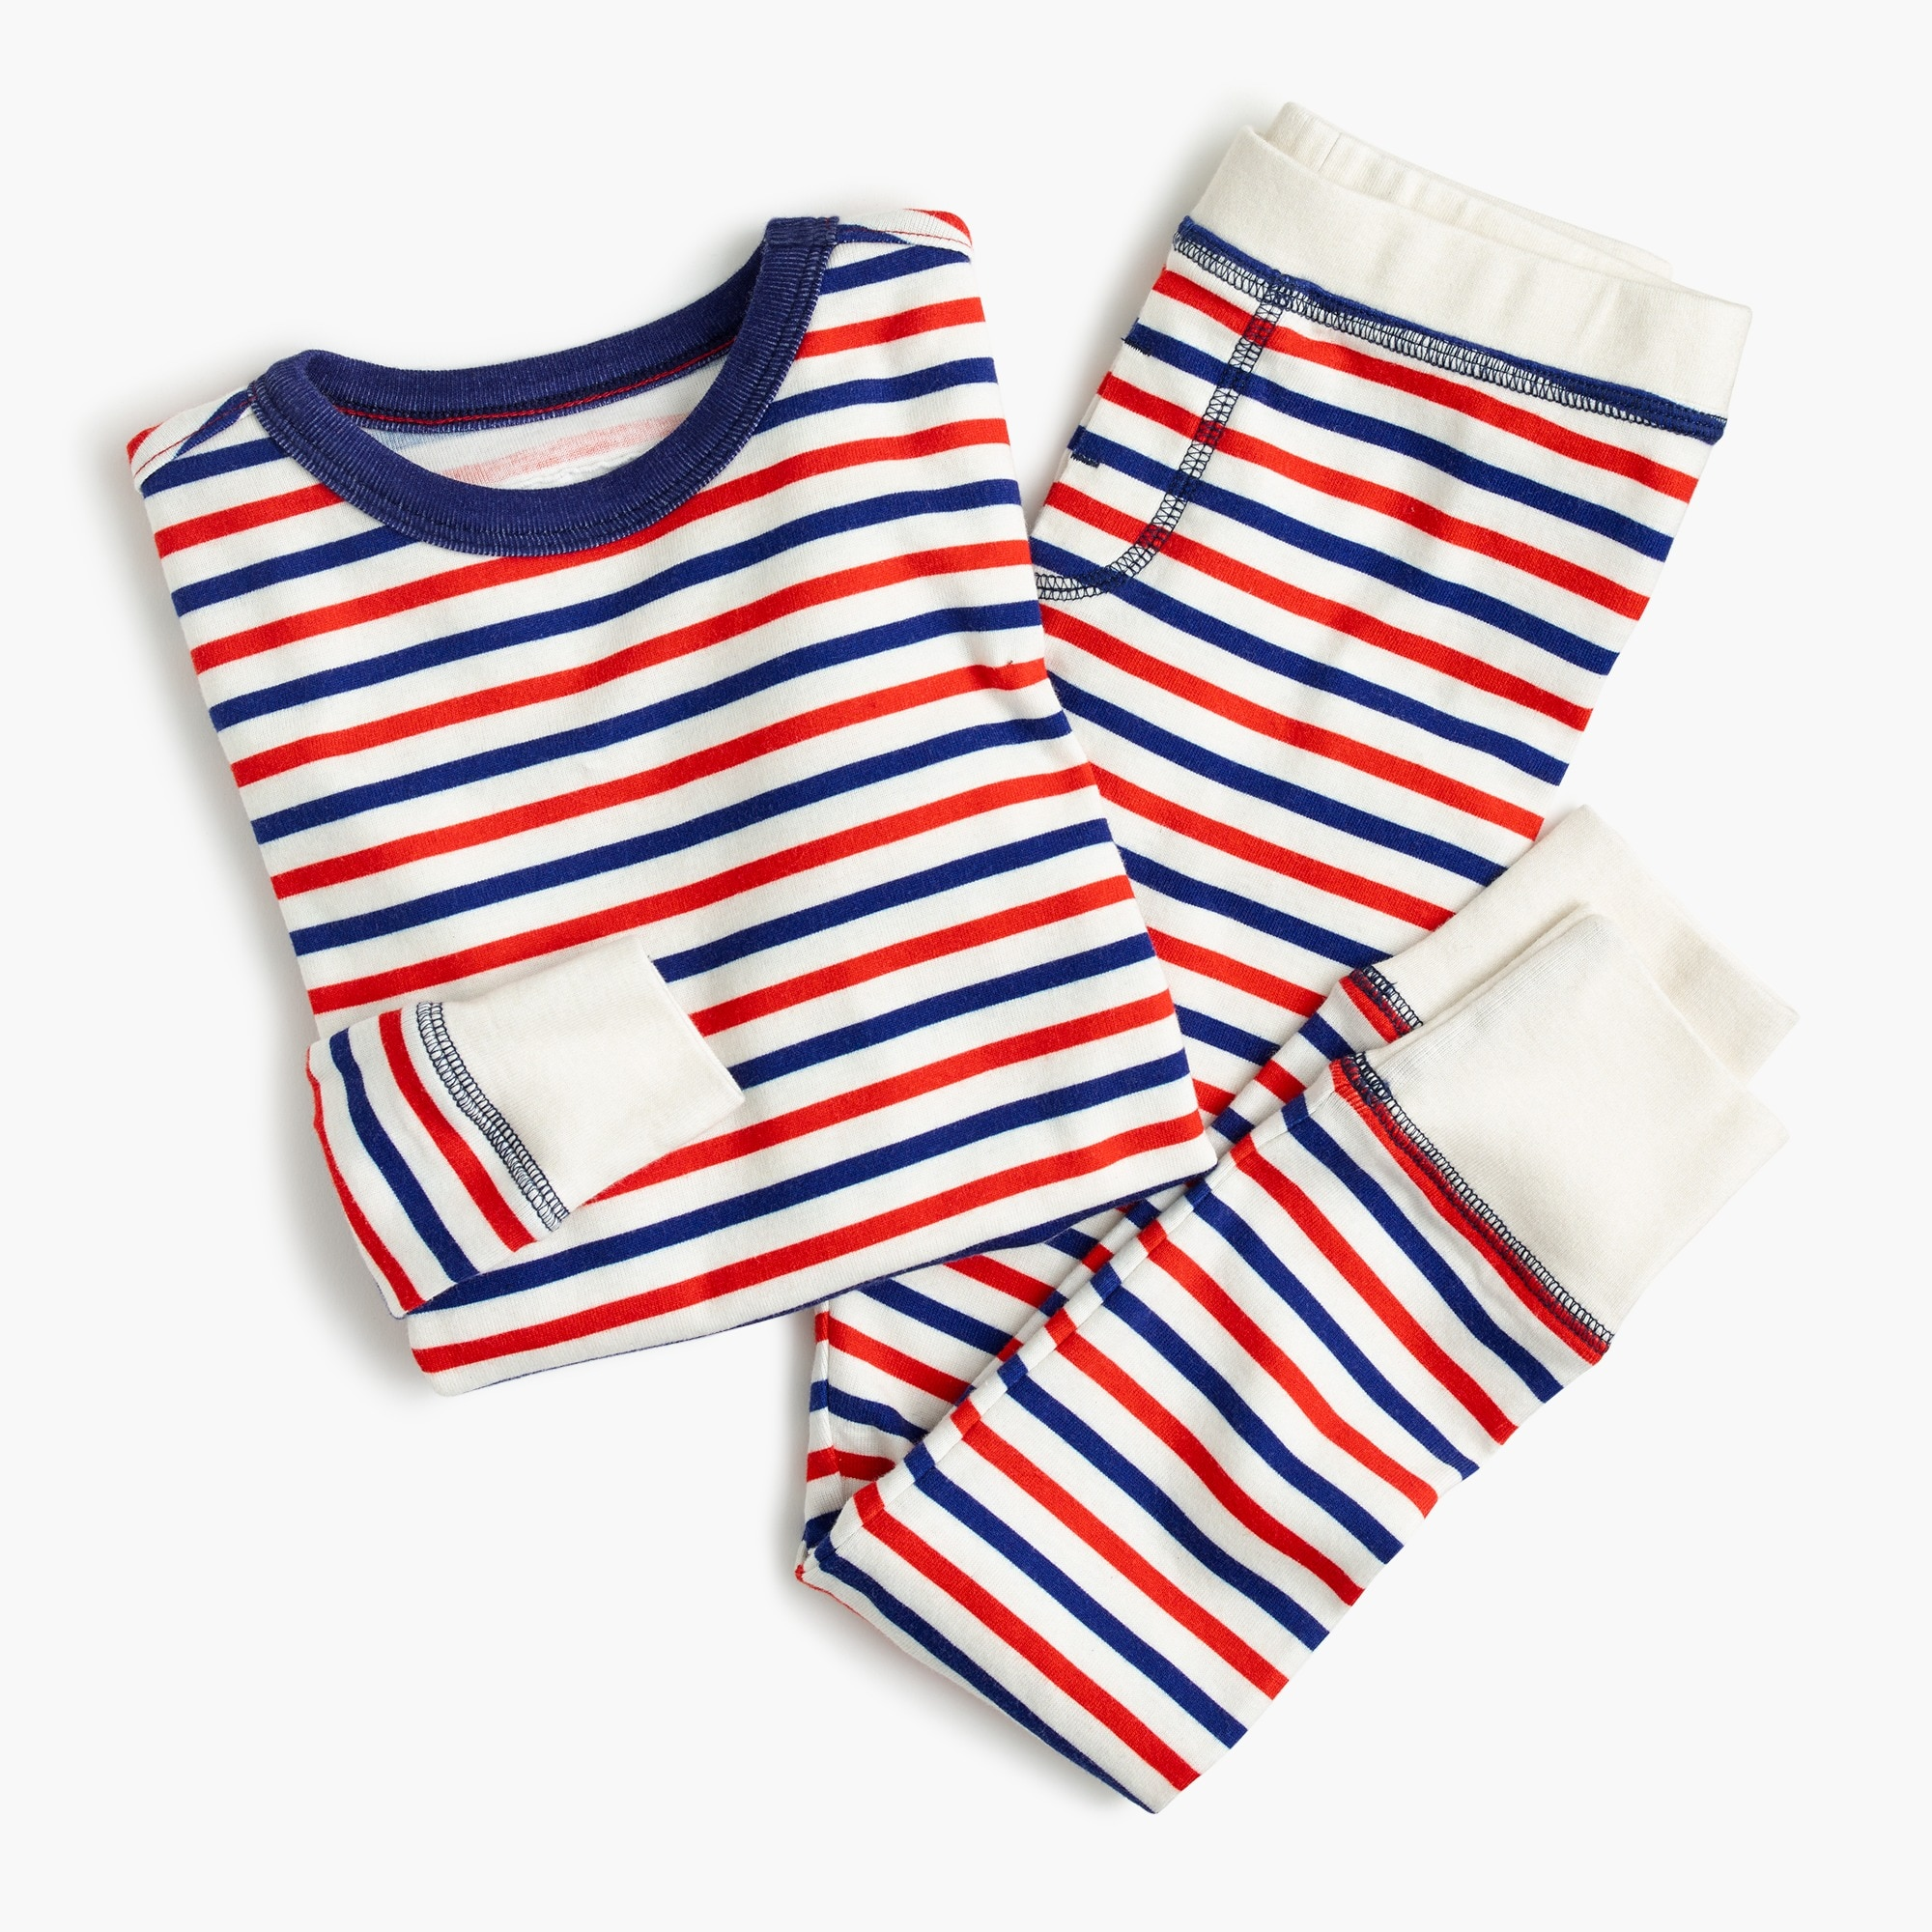 kids' pajama set in stripes - boys' sleep